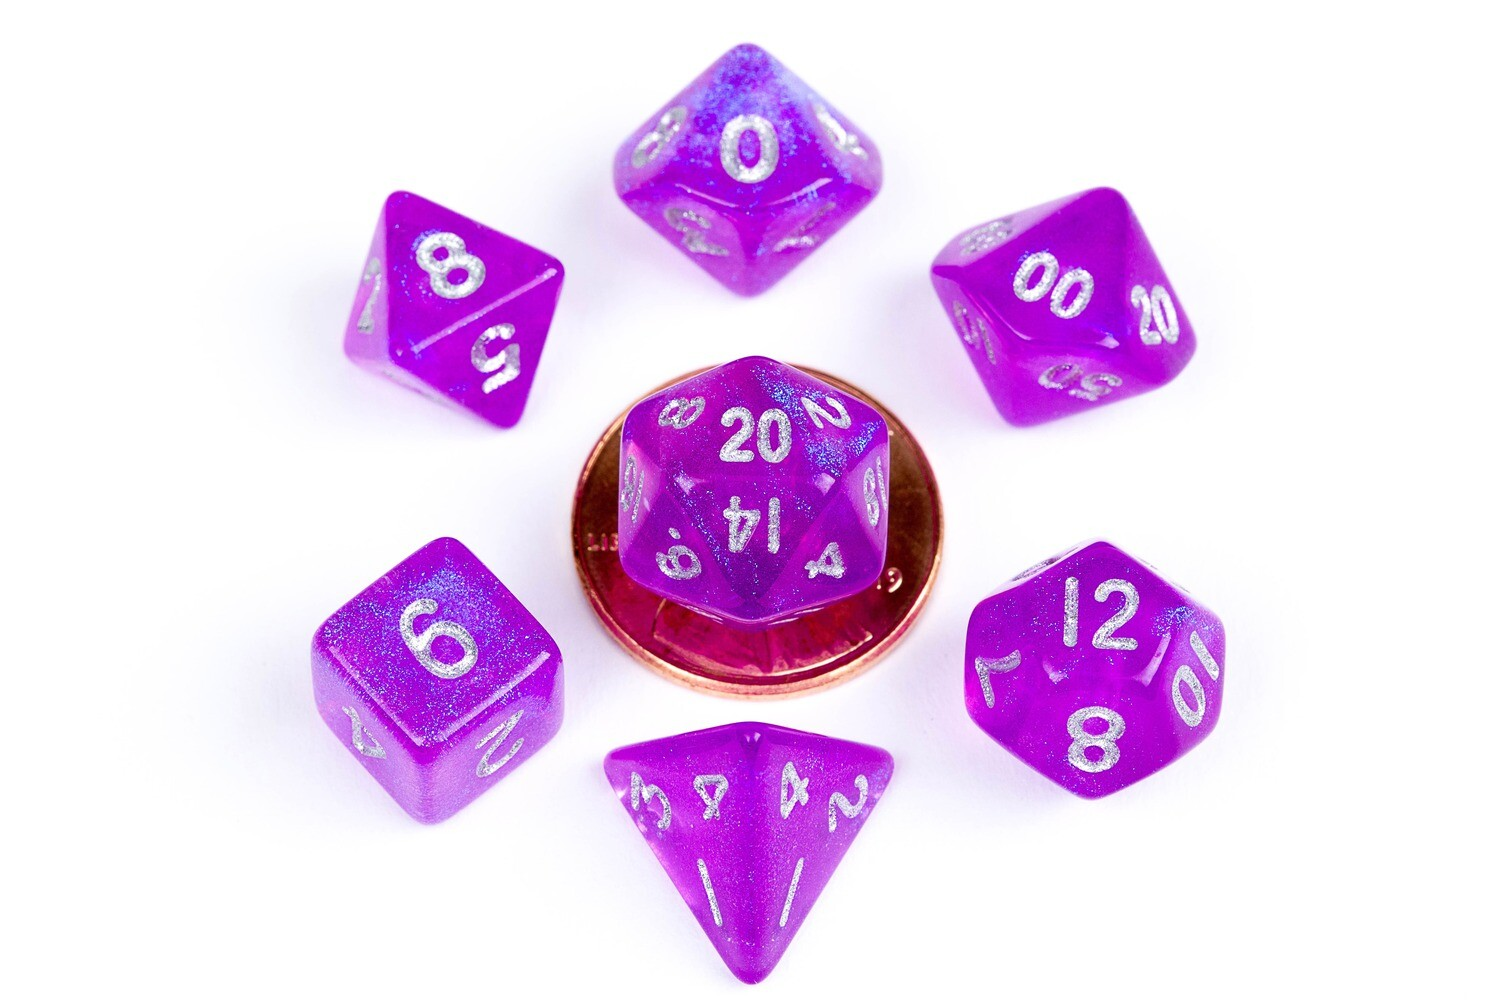 Stardust Purple 10mm Mini Poly Dice Set RPG Tabletop Gaming Roleplay Cards Board Games